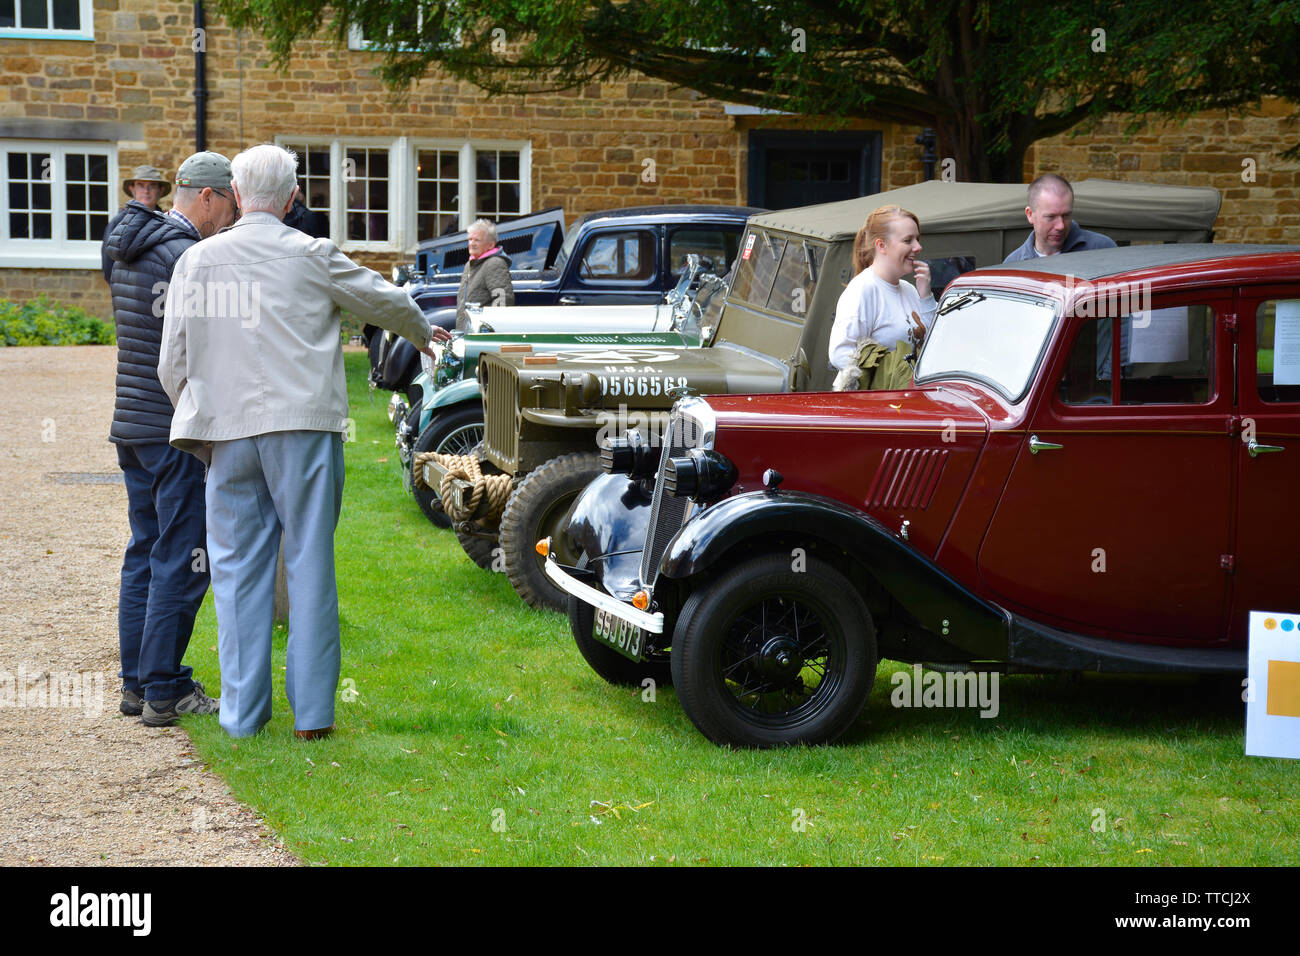 Line up of various classic cars at a car show, Delapre Abbey, Northampton, UK - Stock Image